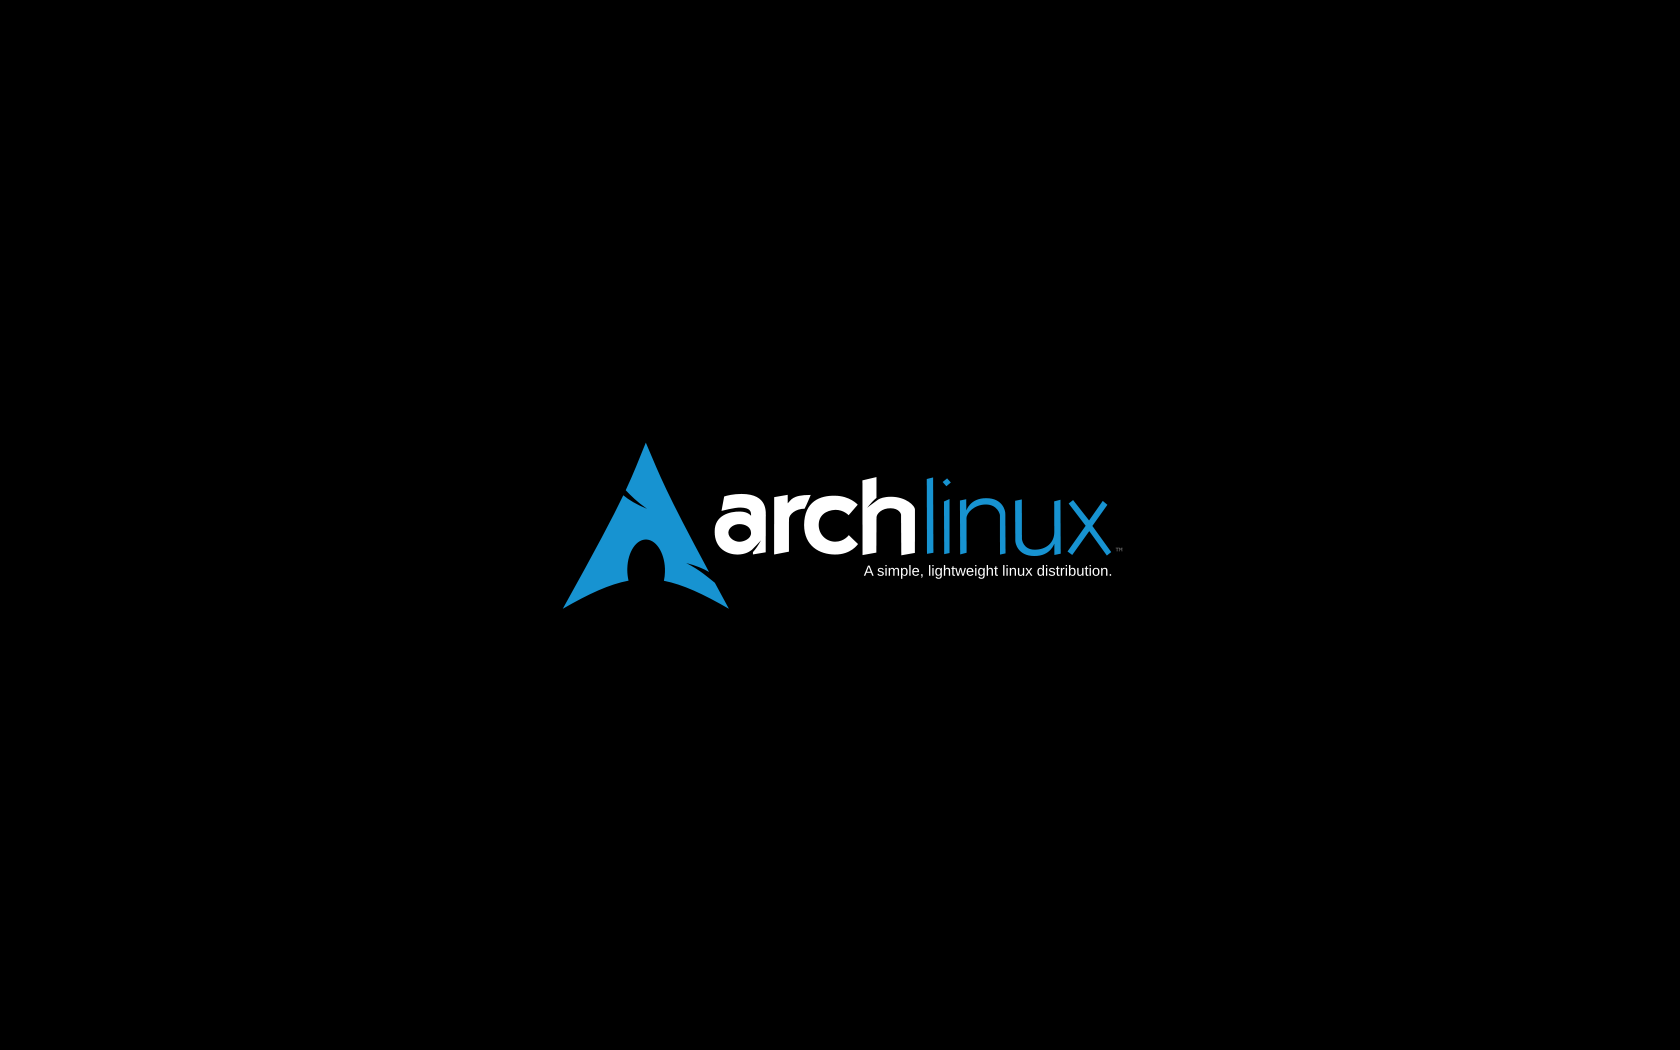 Arch Linux Wallpapers 1680x1050